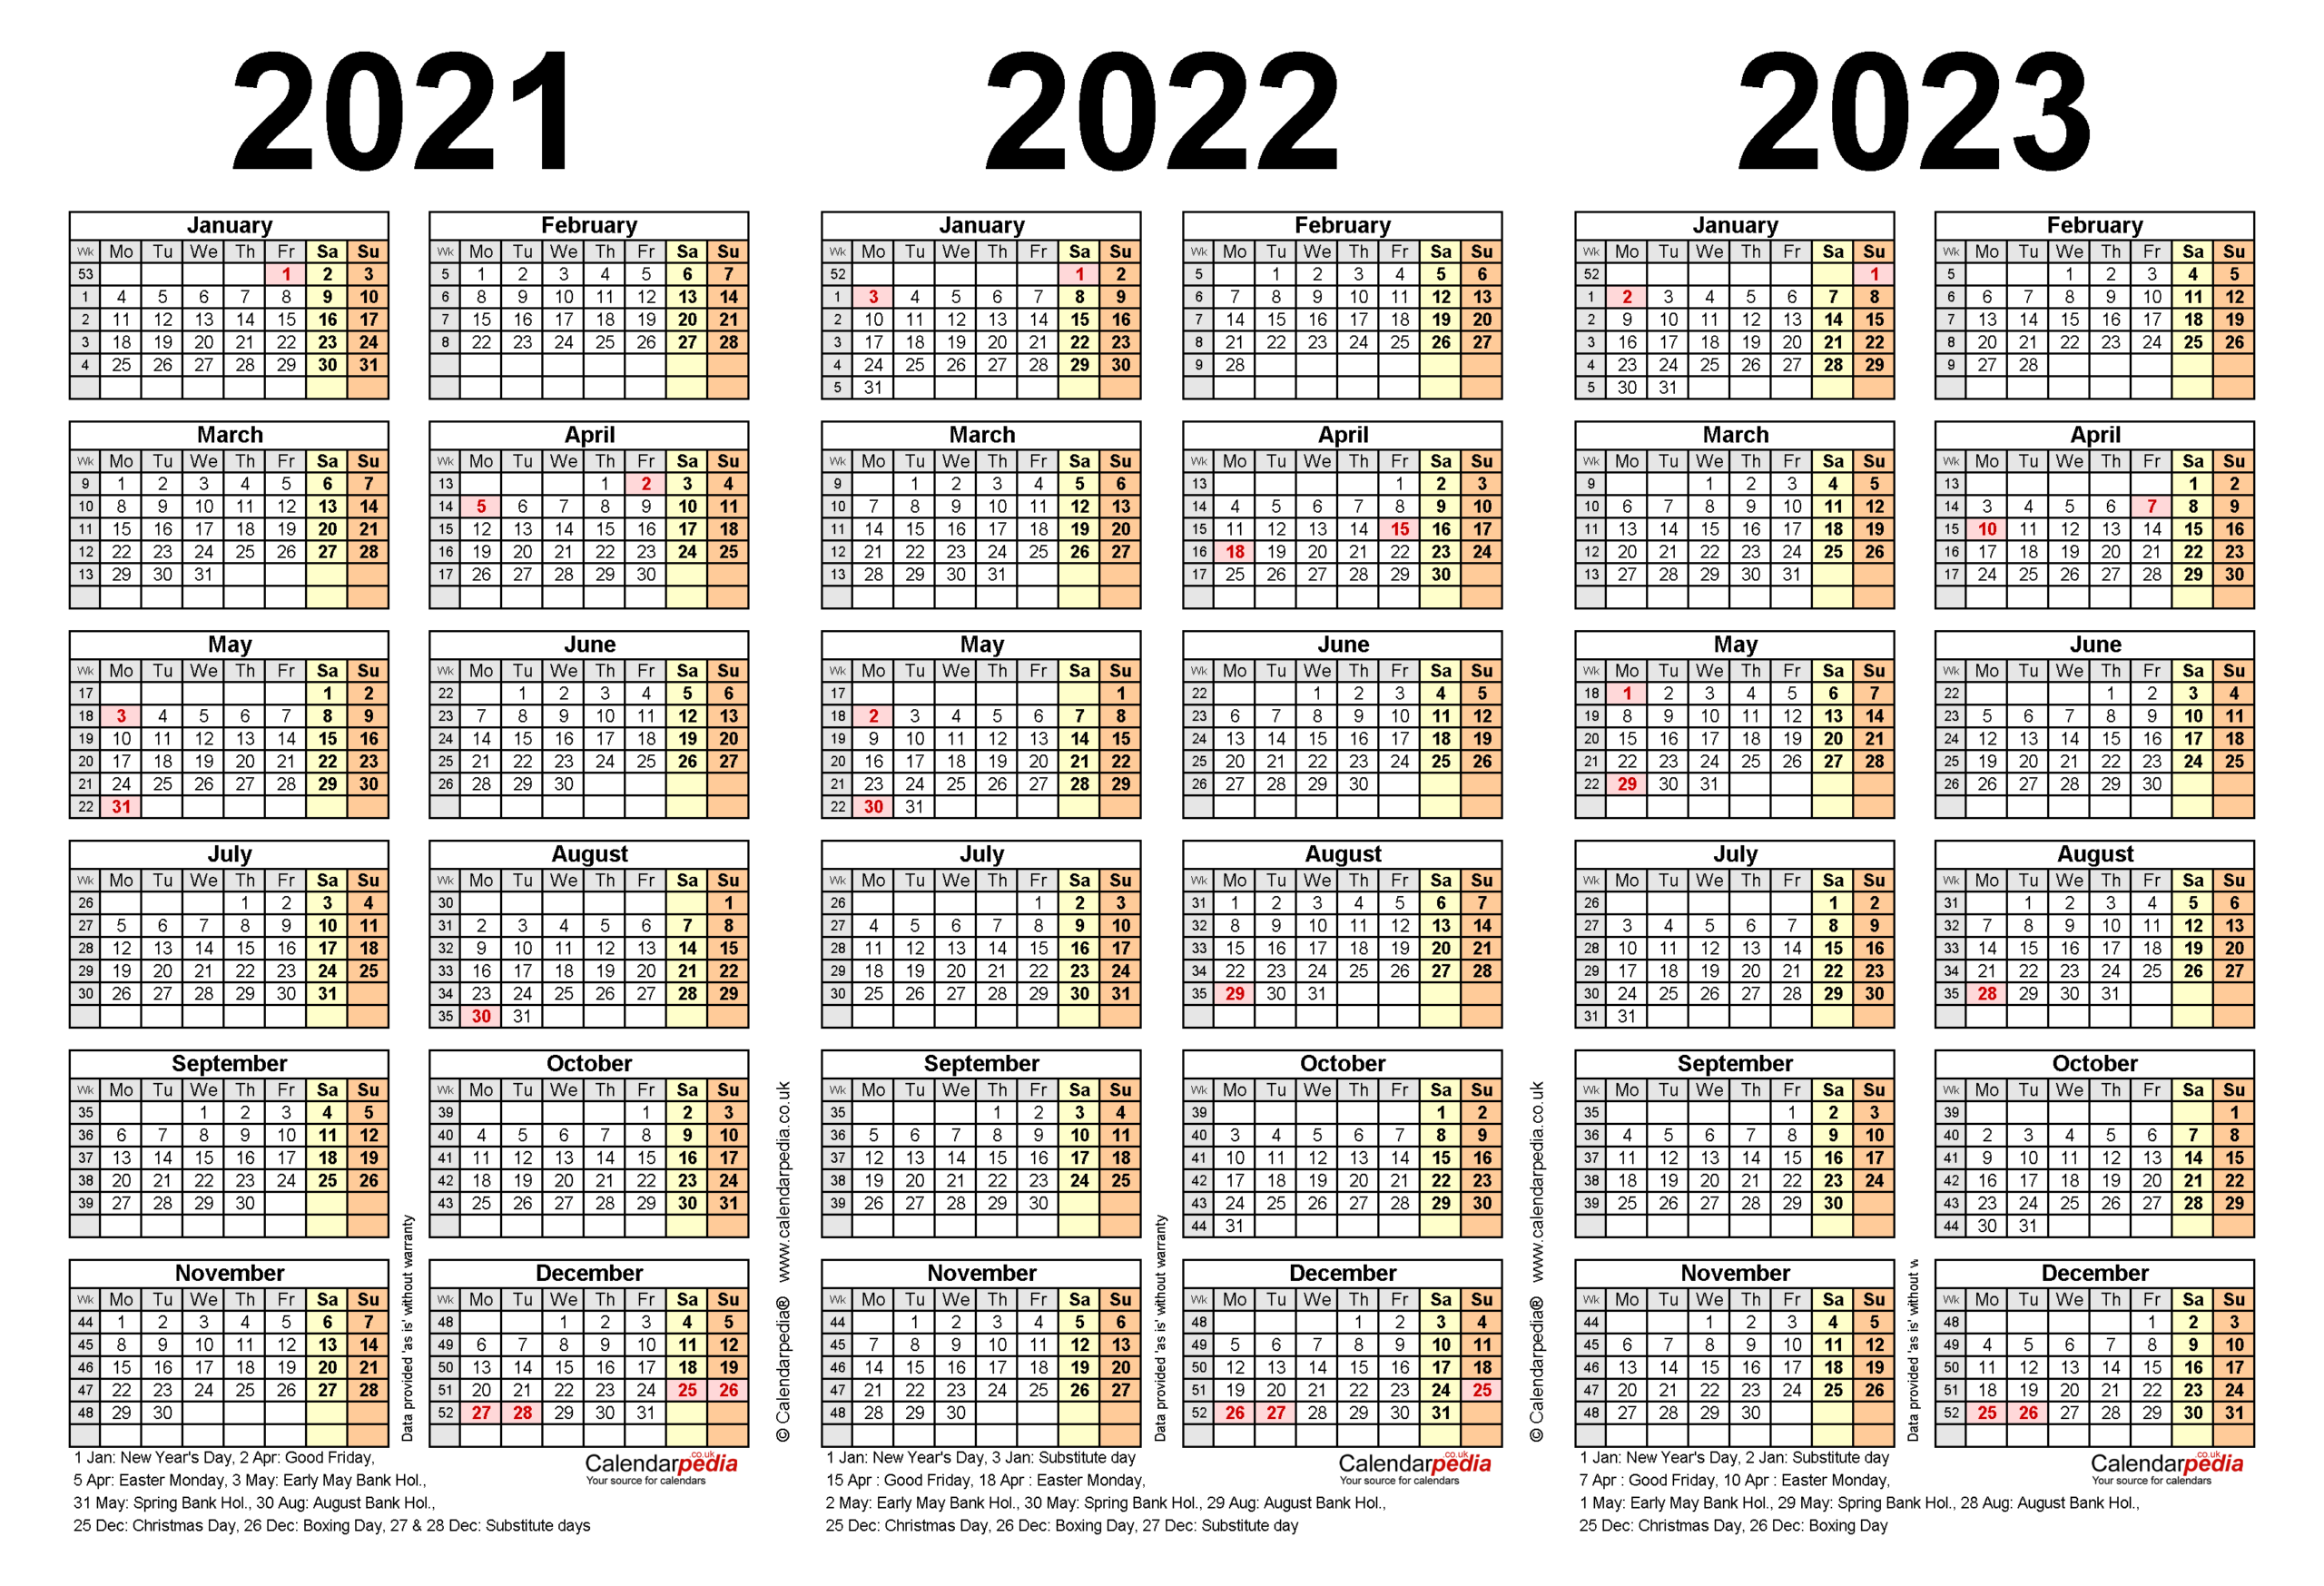 Three Year Calendars For 2021, 2022 & 2023 (Uk) For Pdf intended for 2021 - 2023 Four Year Monthly Calendar